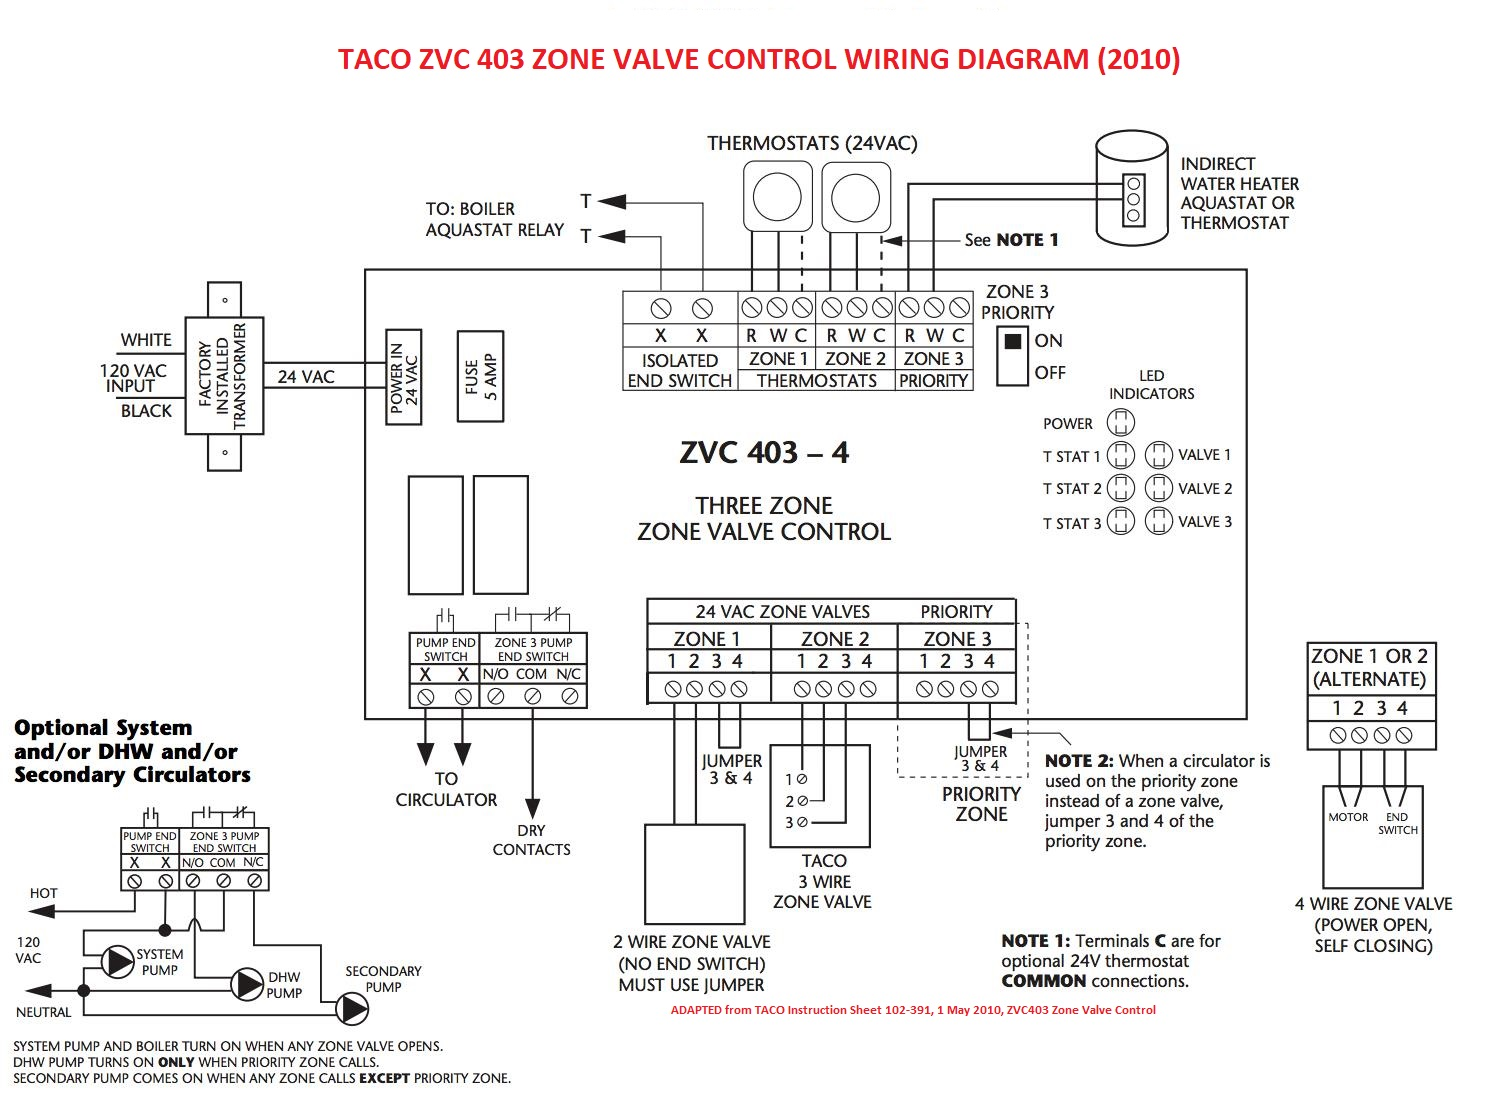 Zone Valve Wiring Installation Instructions Guide To Heating System Zone Valves Zone Valve